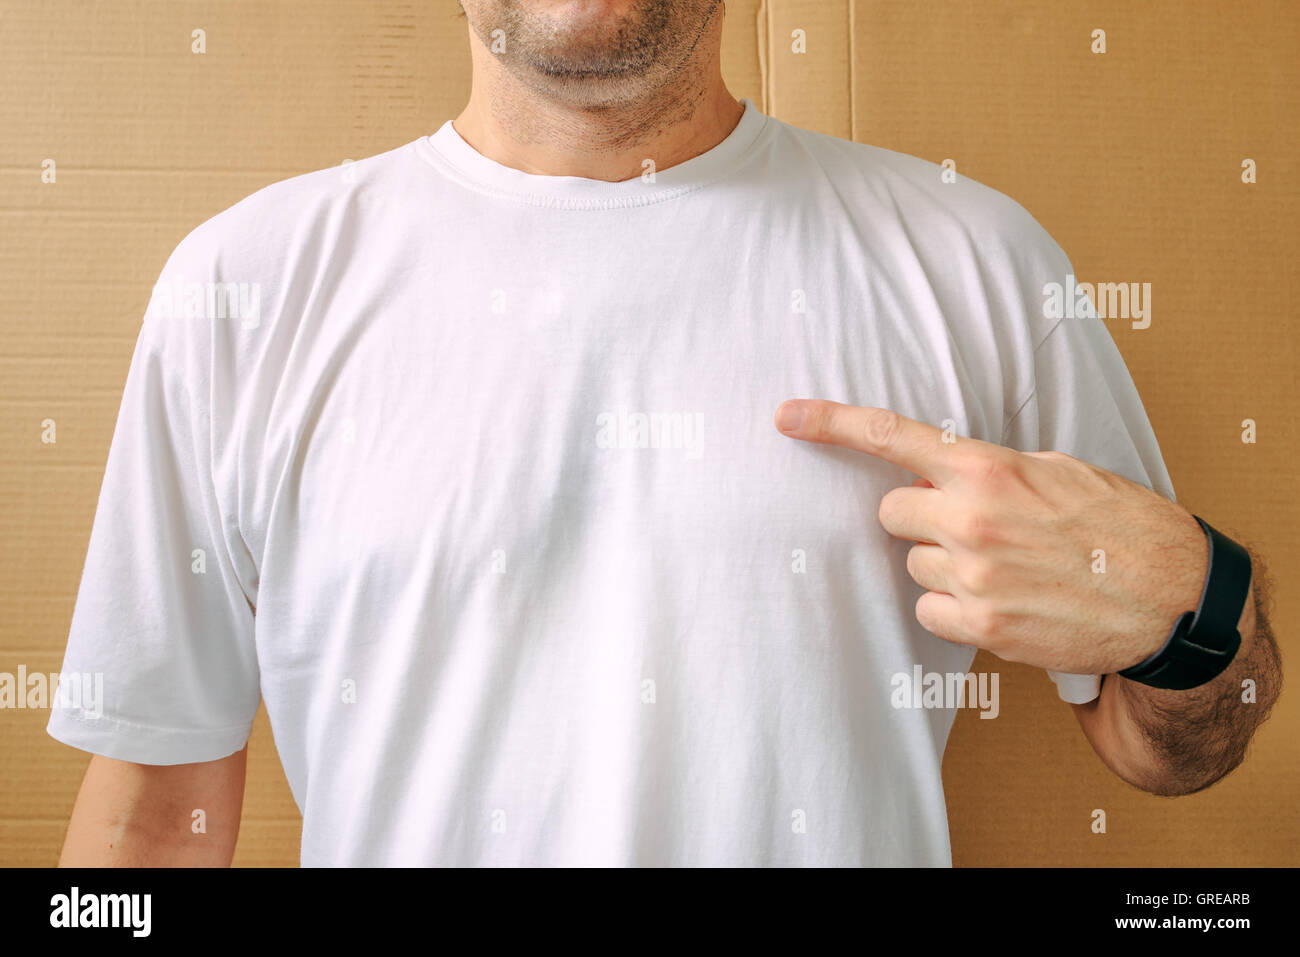 Man in white shirt, blank male t-shirt as copy space for mock up graphic design or text - Stock Image